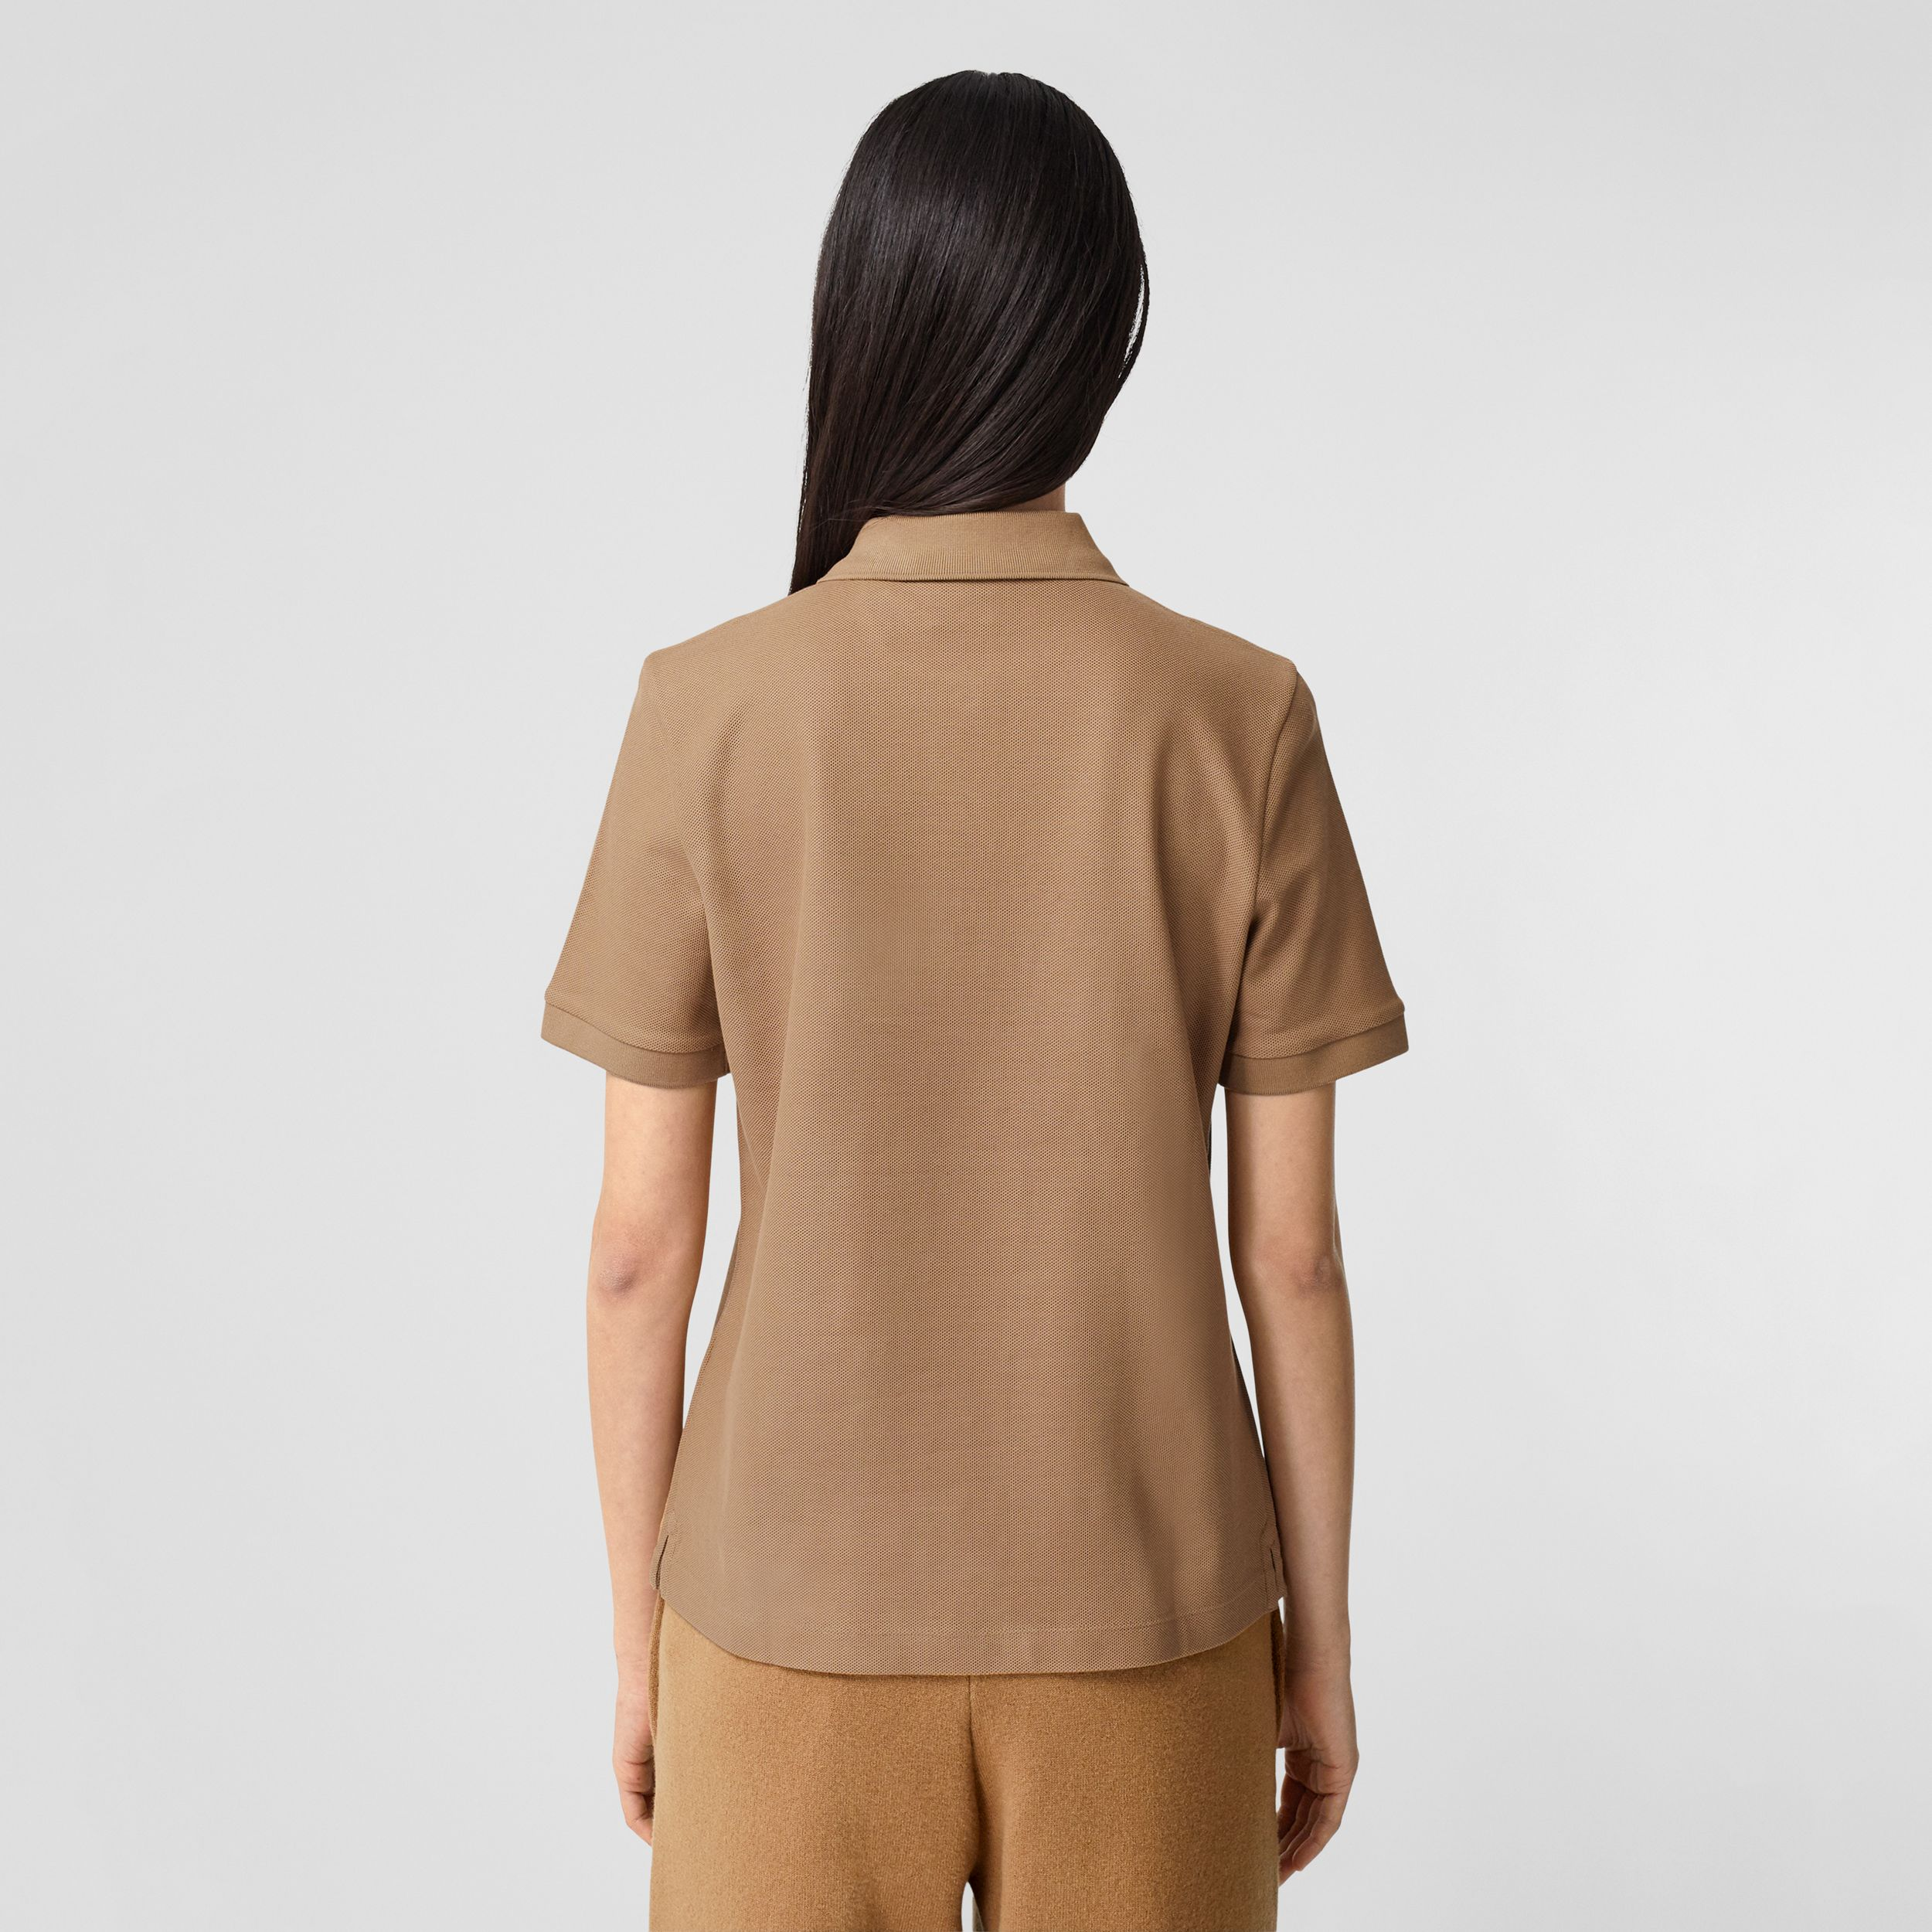 Monogram Motif Cotton Piqué Polo Shirt in Camel - Women | Burberry Hong Kong S.A.R. - 3